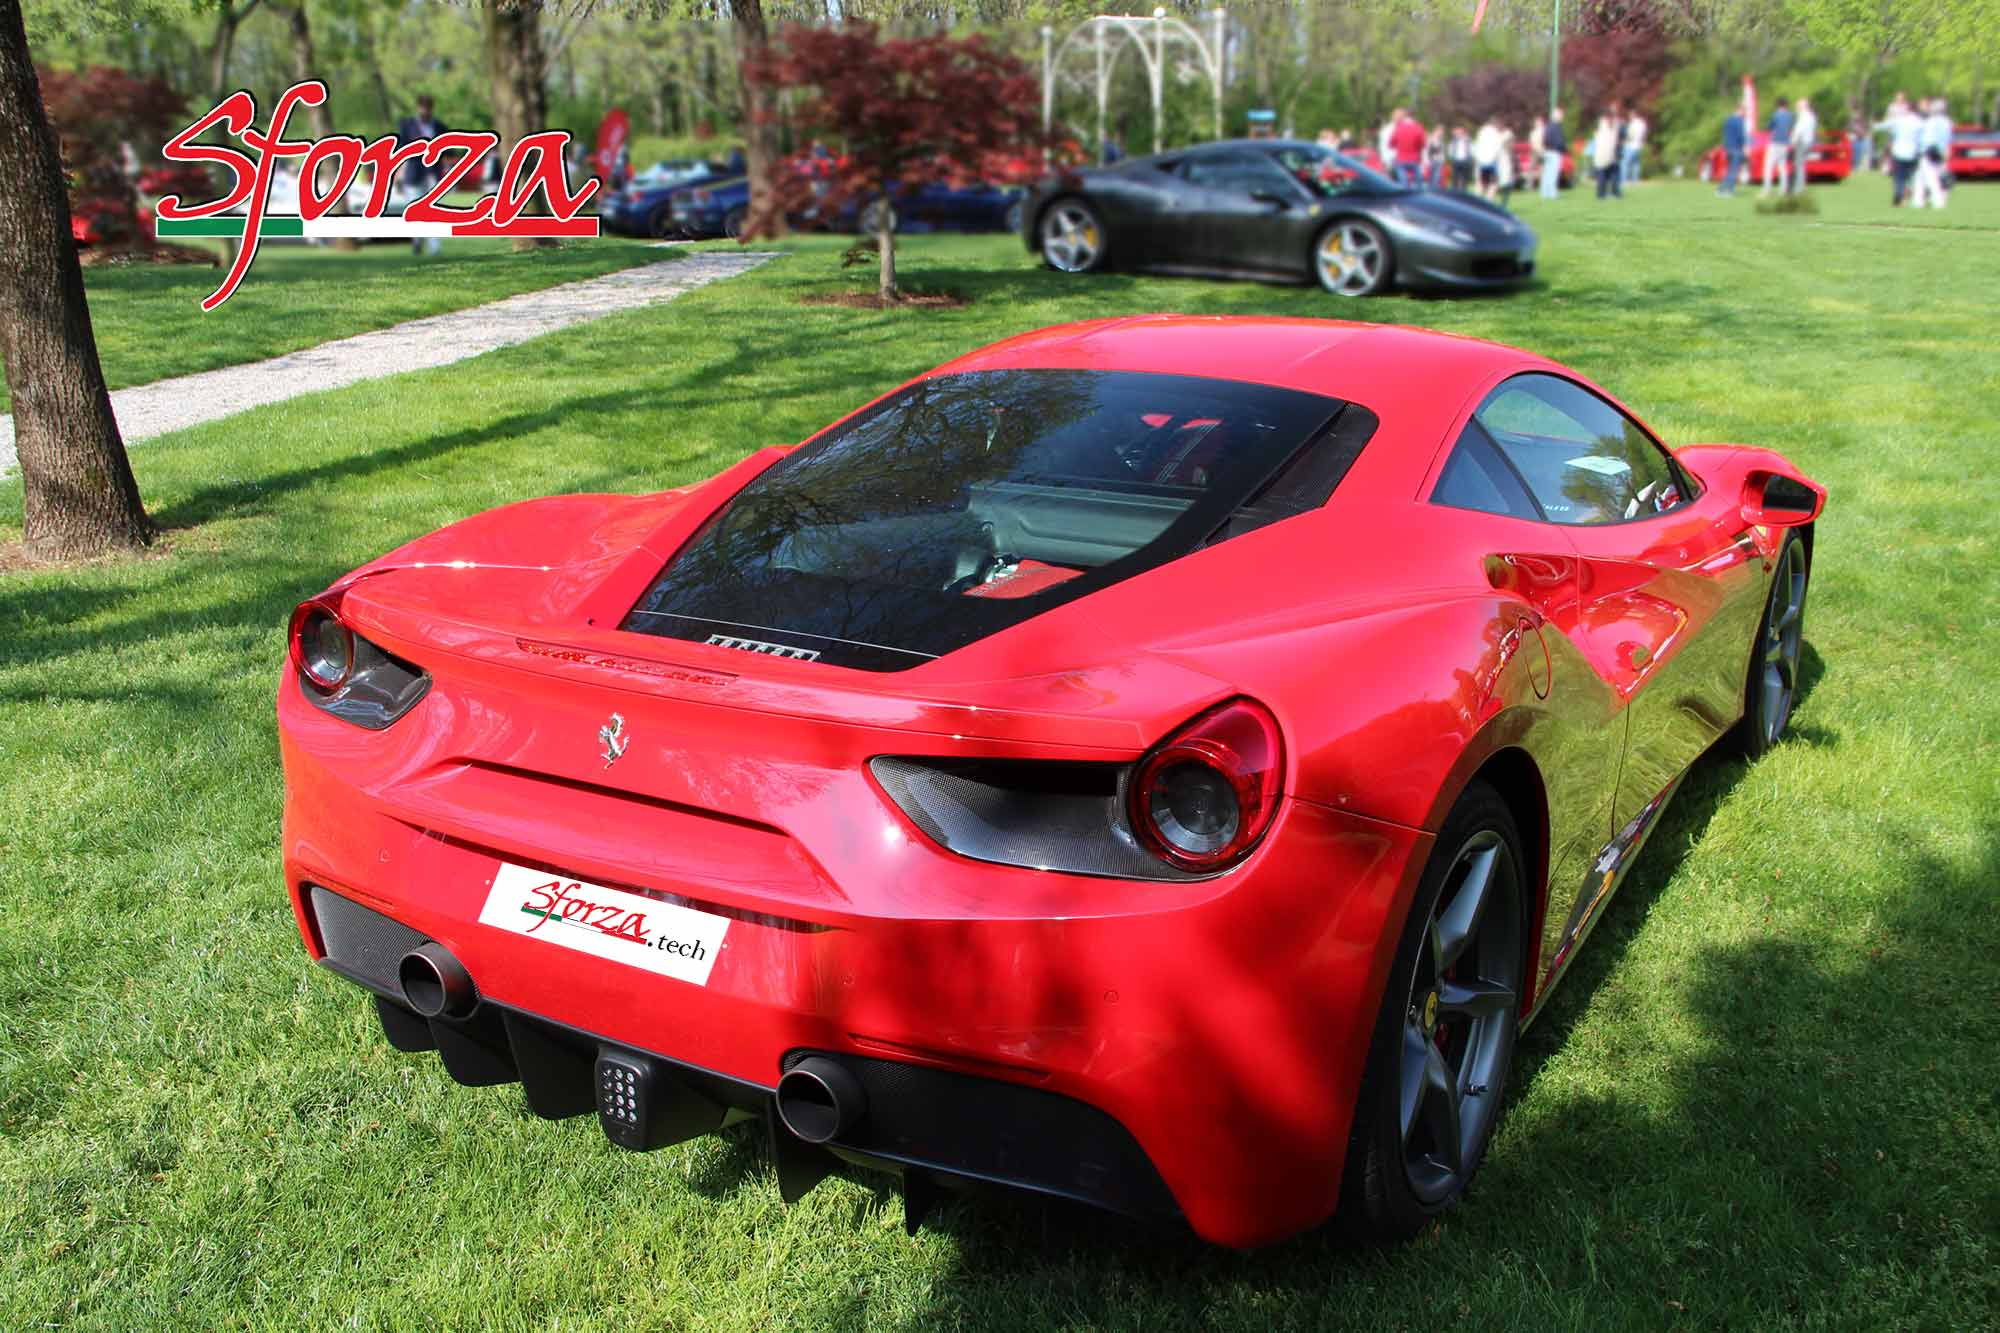 Ferrari 488 Carbon rear light tail surround